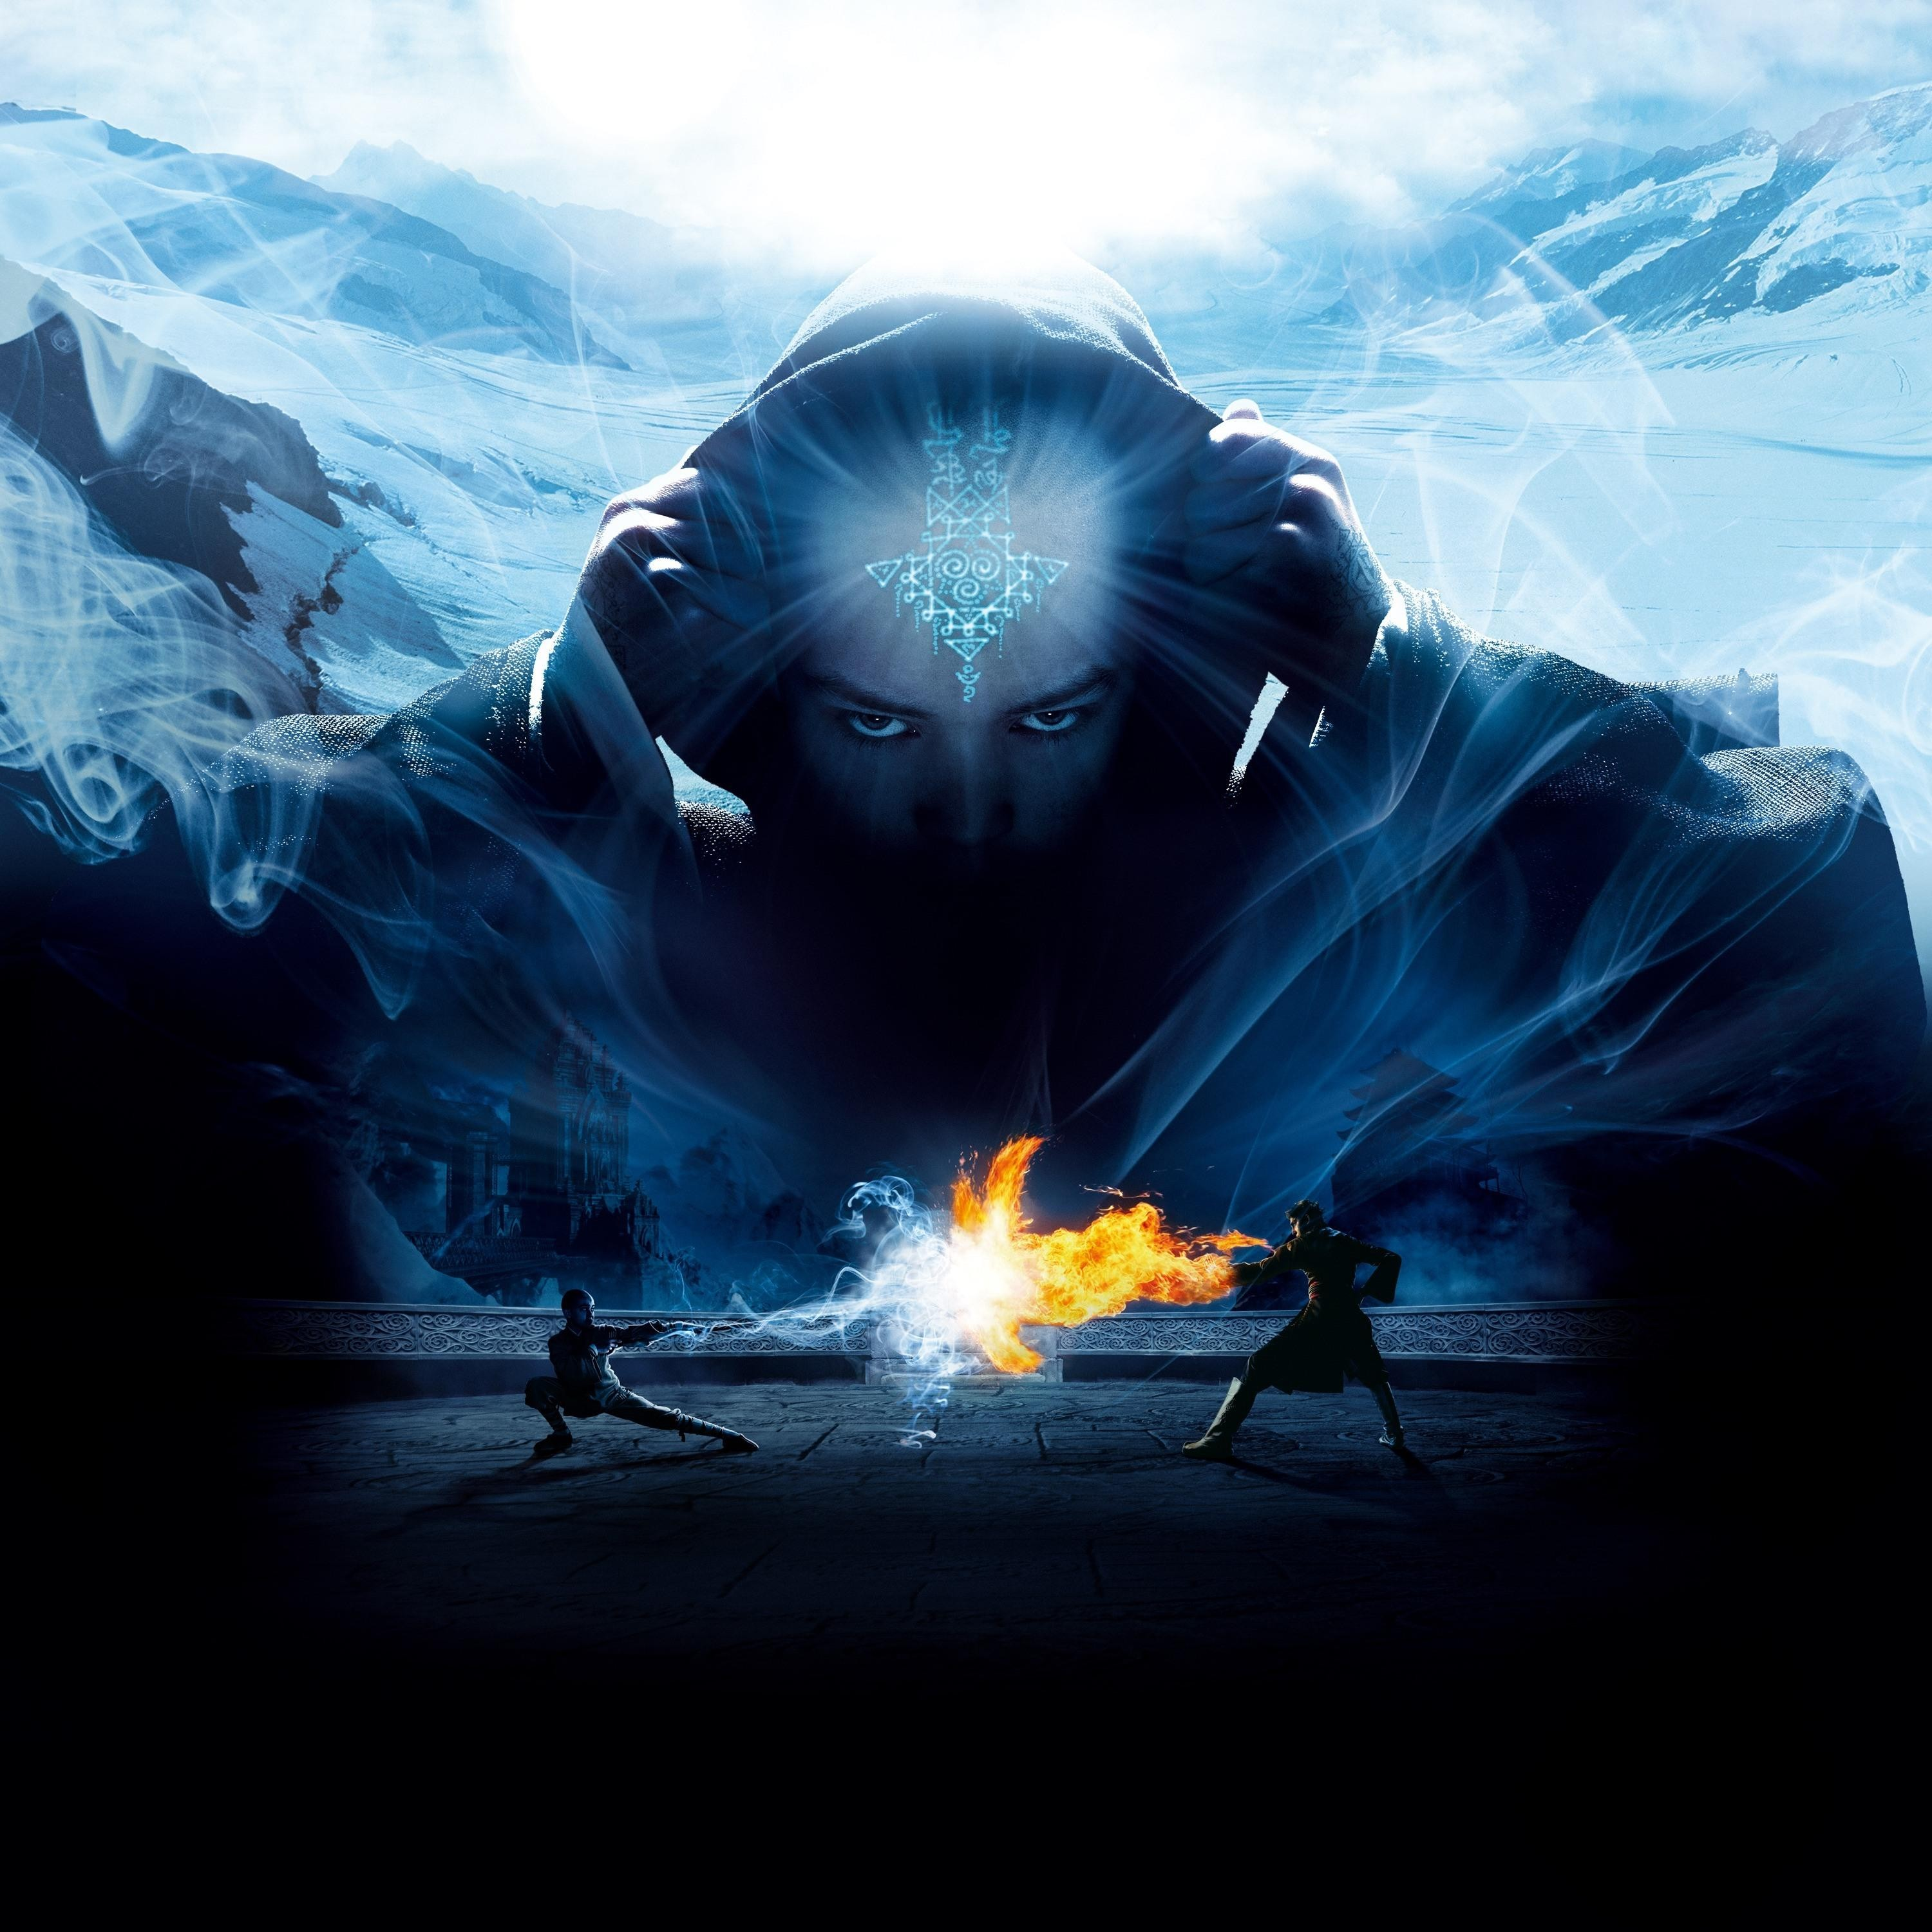 The Last Wallpaper Last Airbender Movie Poster 891394 Hd